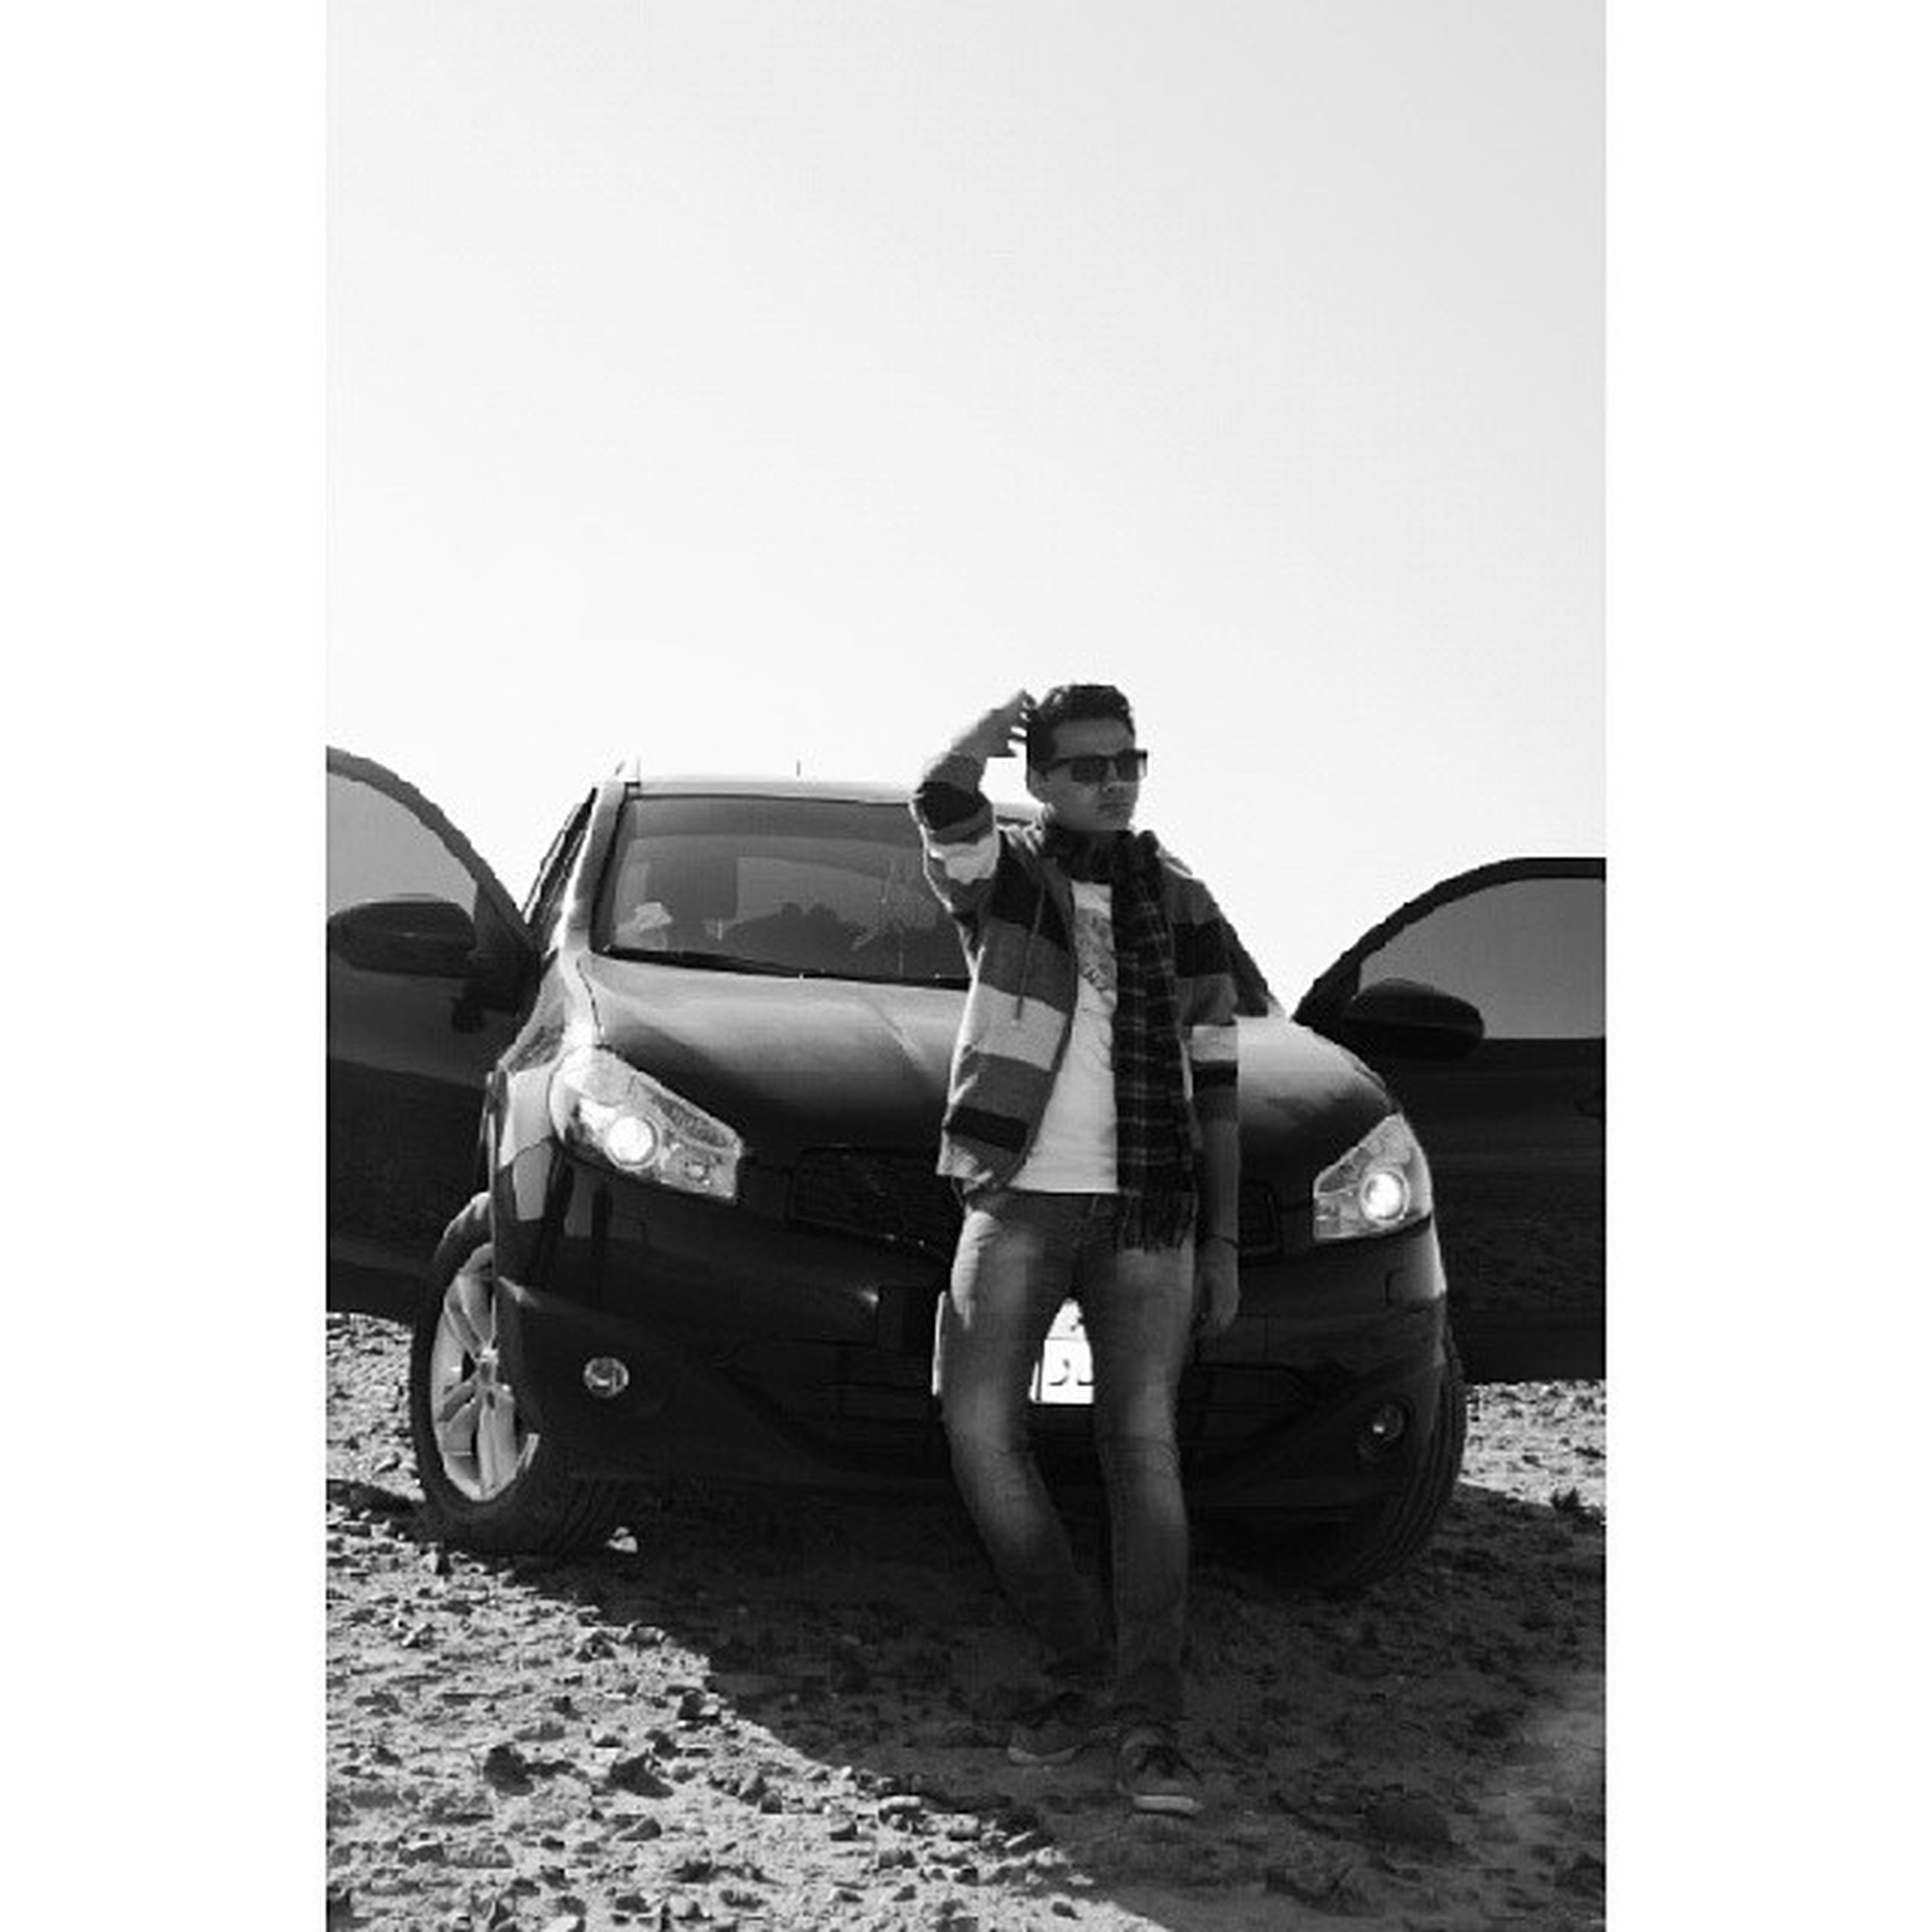 transportation, mode of transport, transfer print, lifestyles, full length, casual clothing, land vehicle, leisure activity, clear sky, auto post production filter, young adult, copy space, young men, sitting, men, car, person, standing